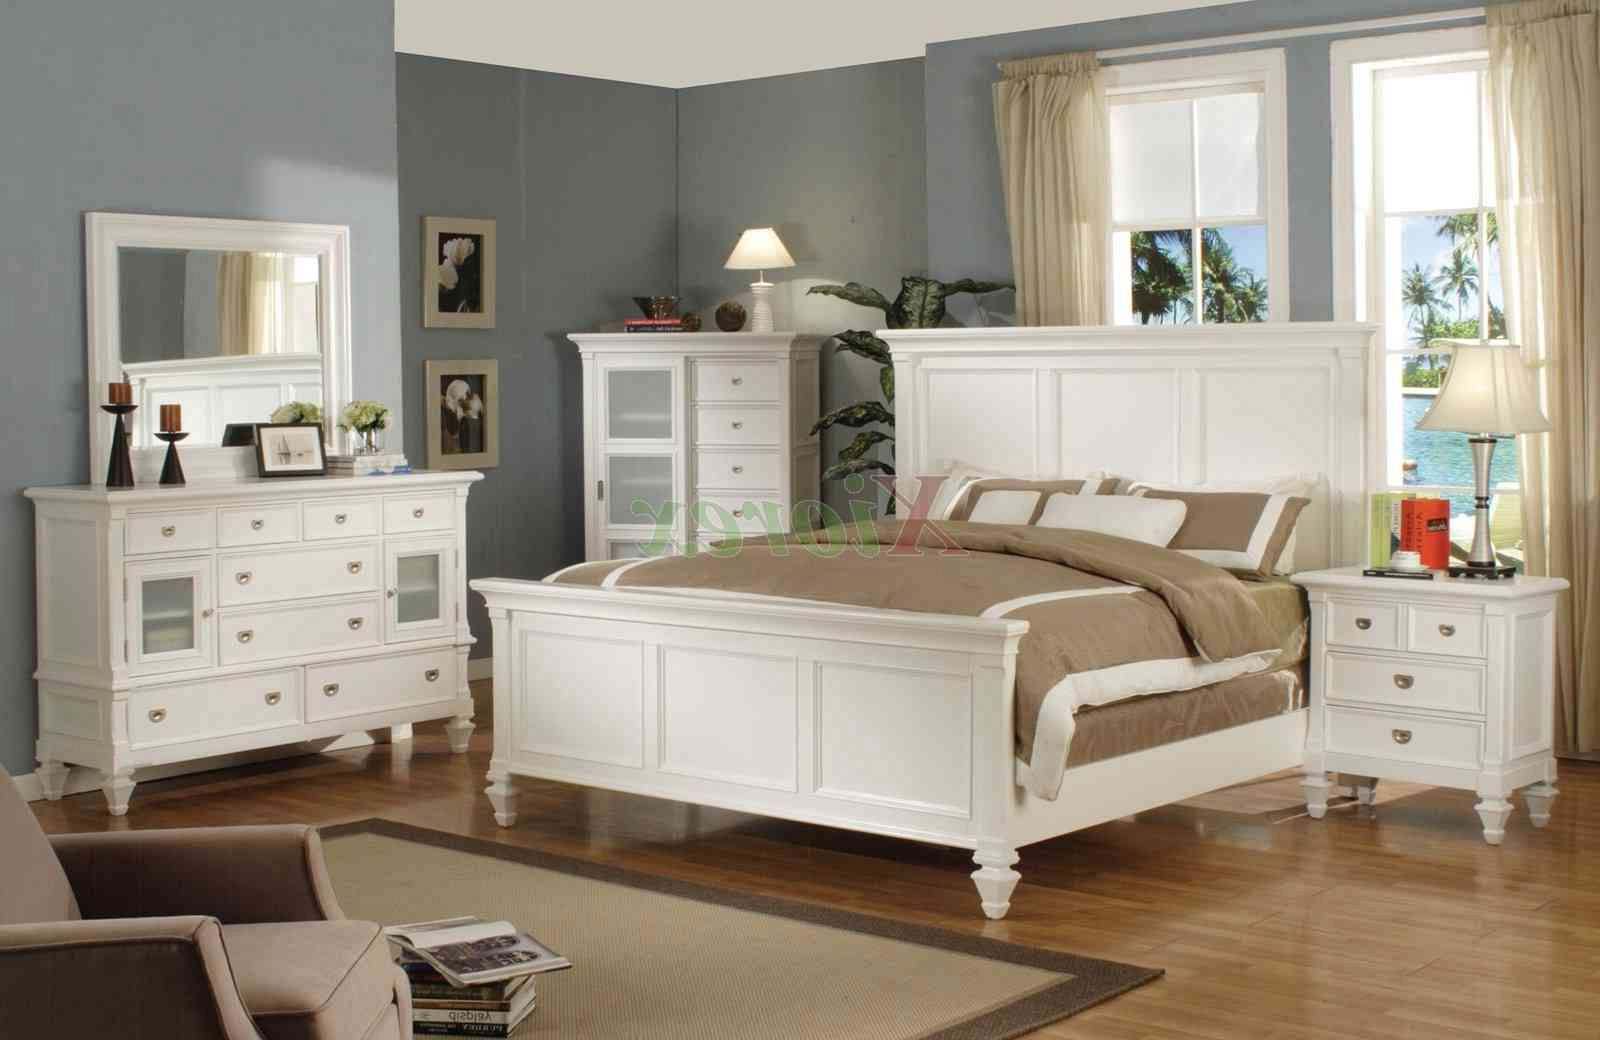 Cool ... Adults Exquisite Interior Kitchen On Bedroom Set Kids Bedroom Furniture white bedroom furniture sets for adults